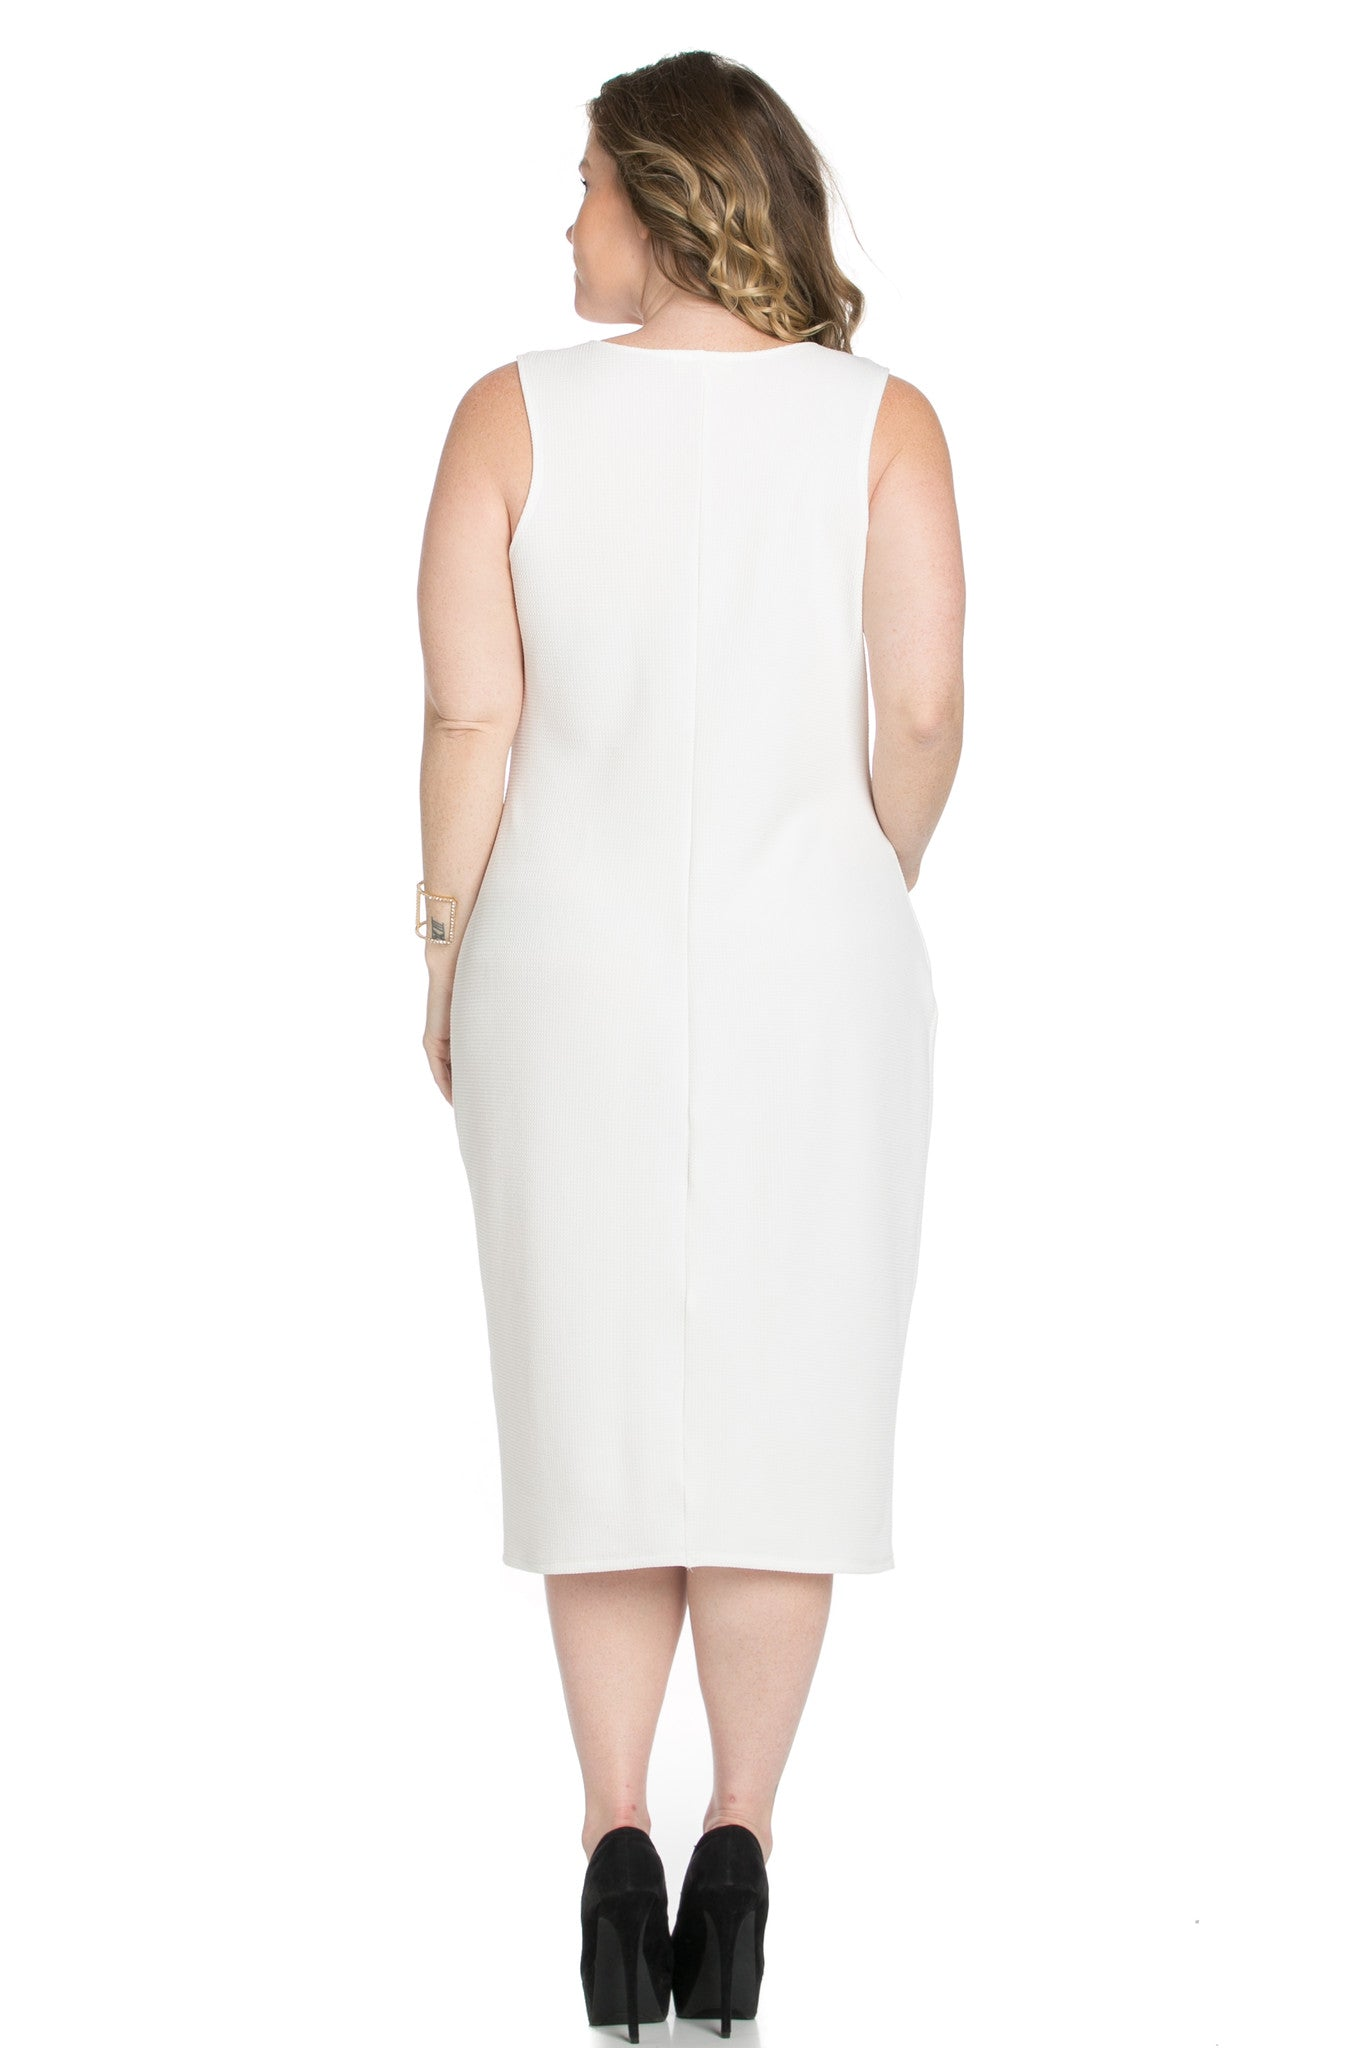 White Modest a Bit with Bare Shoulders Dress - Dresses - My Yuccie - 5